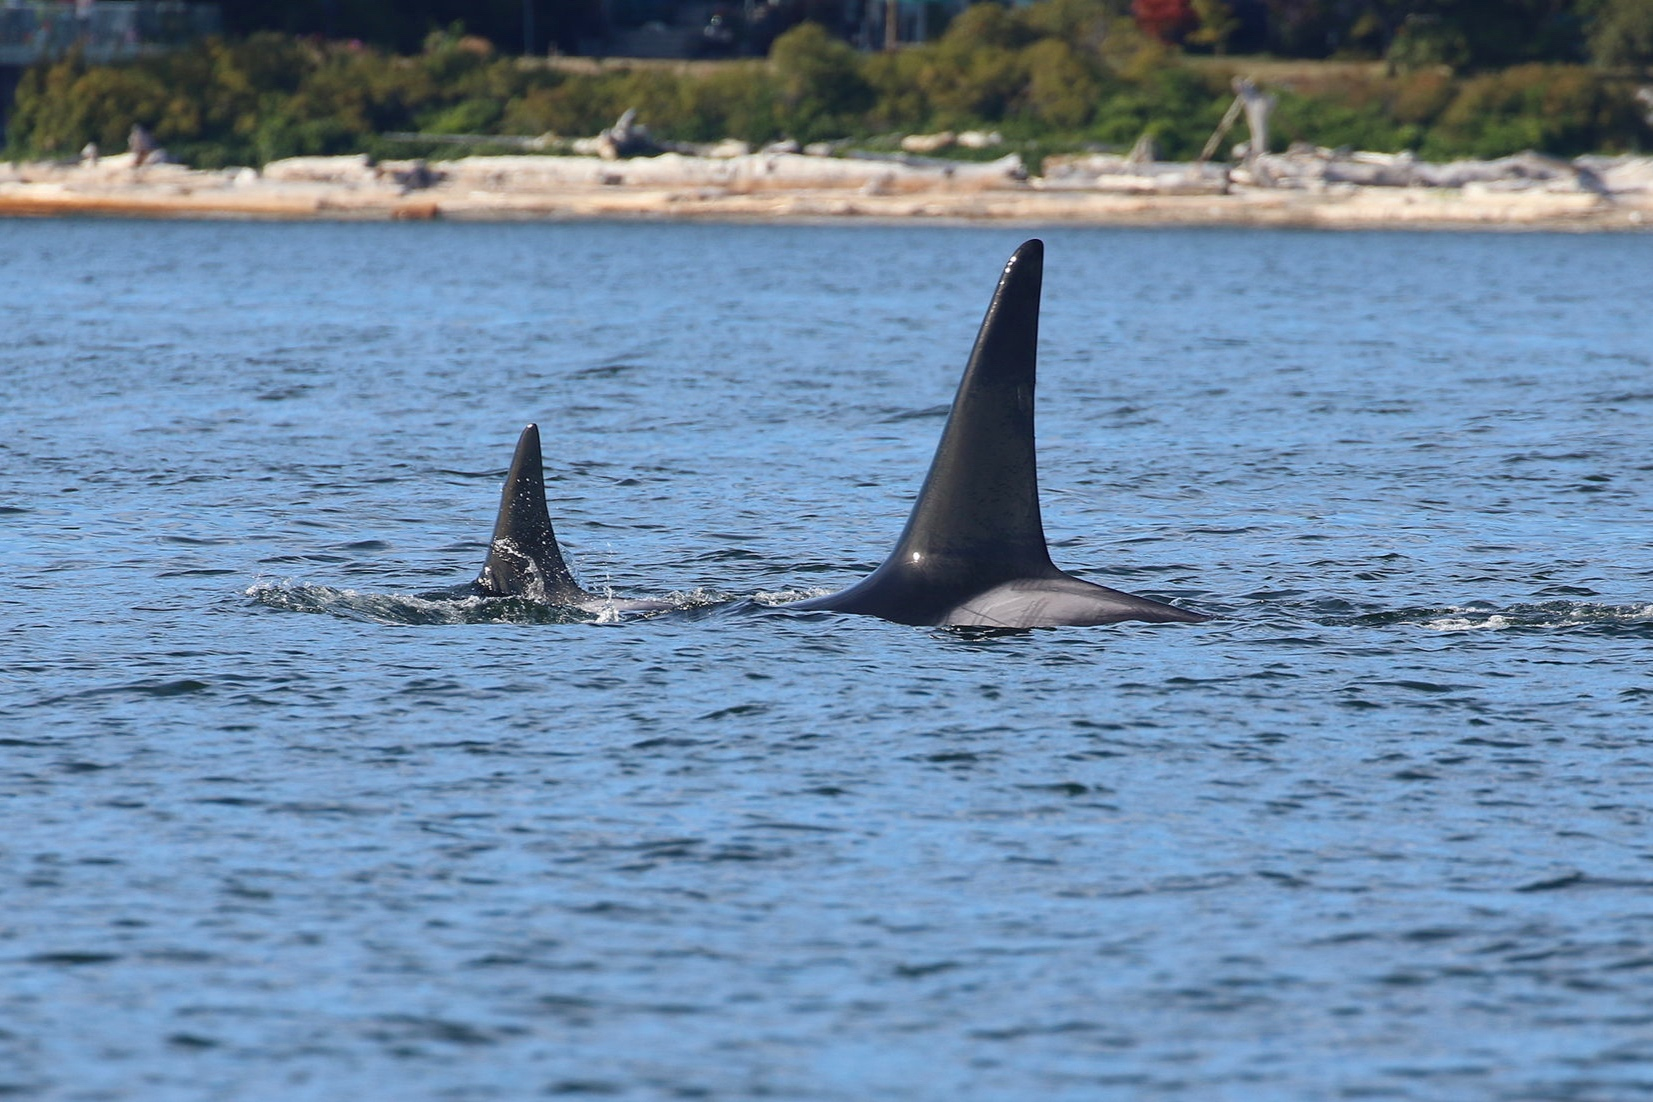 """T101 - """"Reef"""" (left) and her son T101B - """"Lagoon"""" (right). Notice the intricate scaring on Lagoon's saddle patch, making him easy to ID. Photo by Cheyenne Brewster (3:30)."""